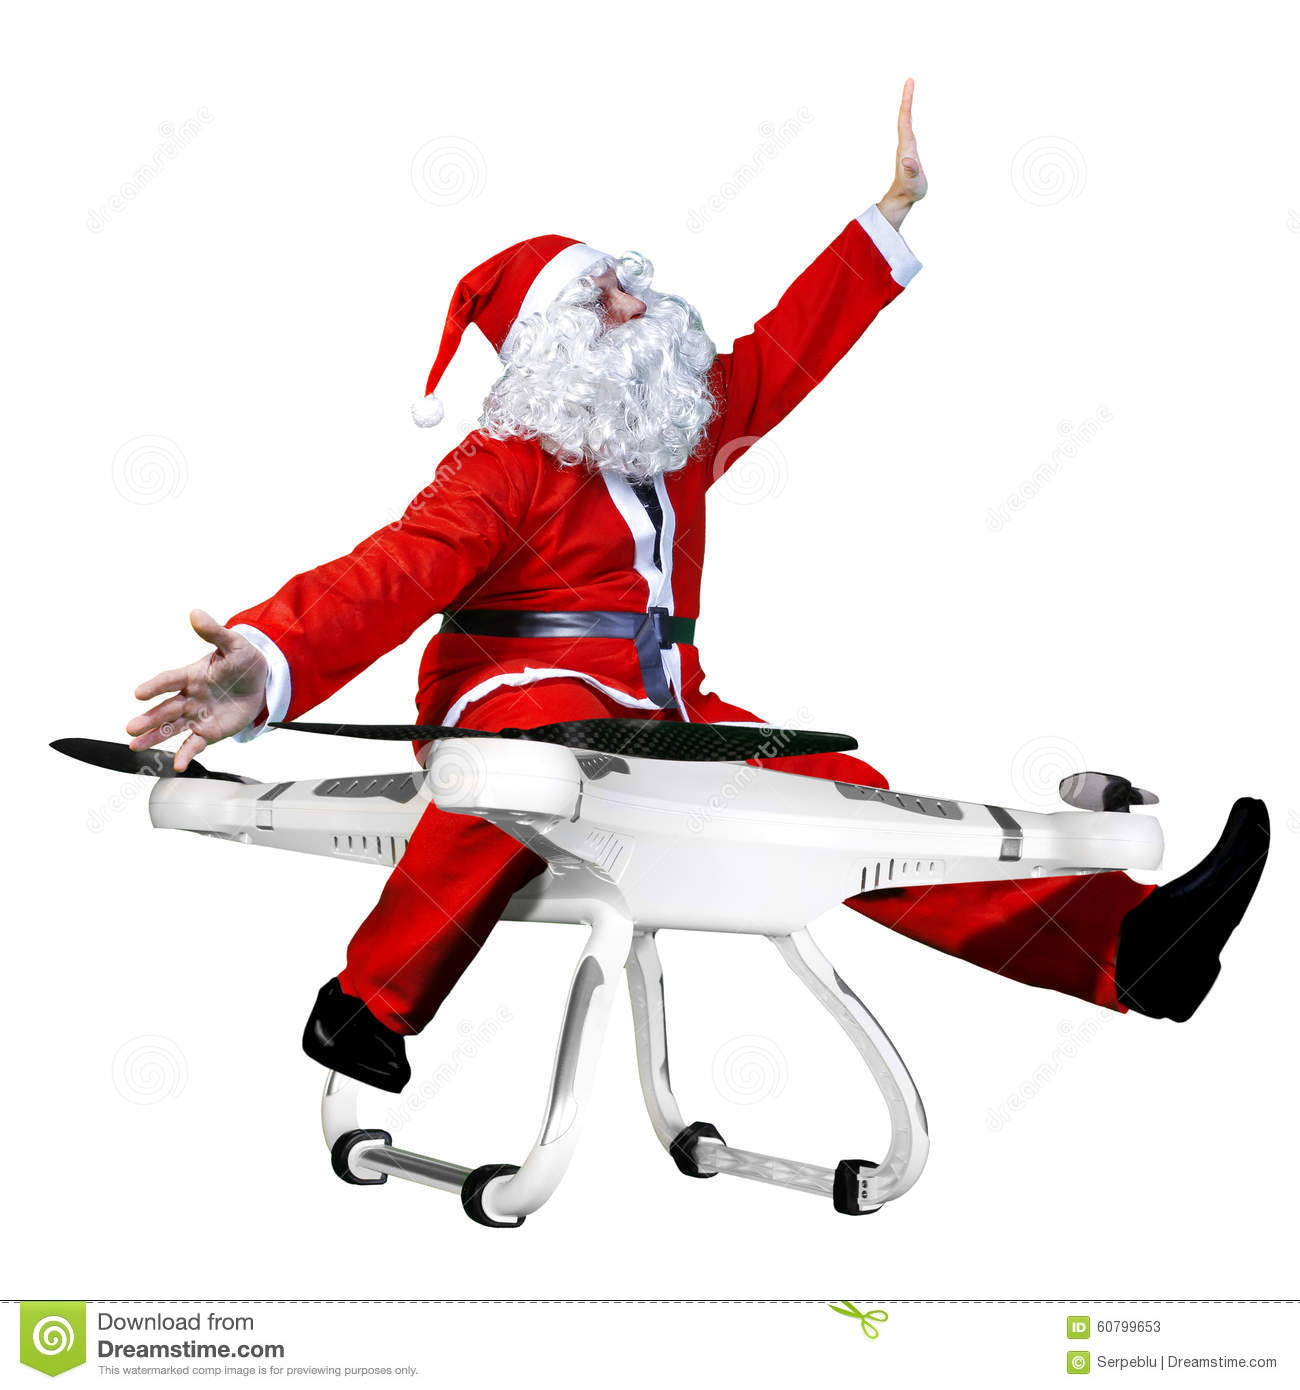 toy drones that fly with Stock Photo Drone Santa Claus Flying Image60799653 on 460662 Testing Dji Phantom Vision Quadcopter Drone additionally Dji Spark Quadcopter Mini Drone Fly  bo The Best Smallest Selfie Drone additionally Clever Devils The Enemies And Ai Of Fall Of Cybertron together with Mavic Pro Coolest Gadget Since Original Iphone Reviews also Stock Photo Drone Santa Claus Flying Image60799653.